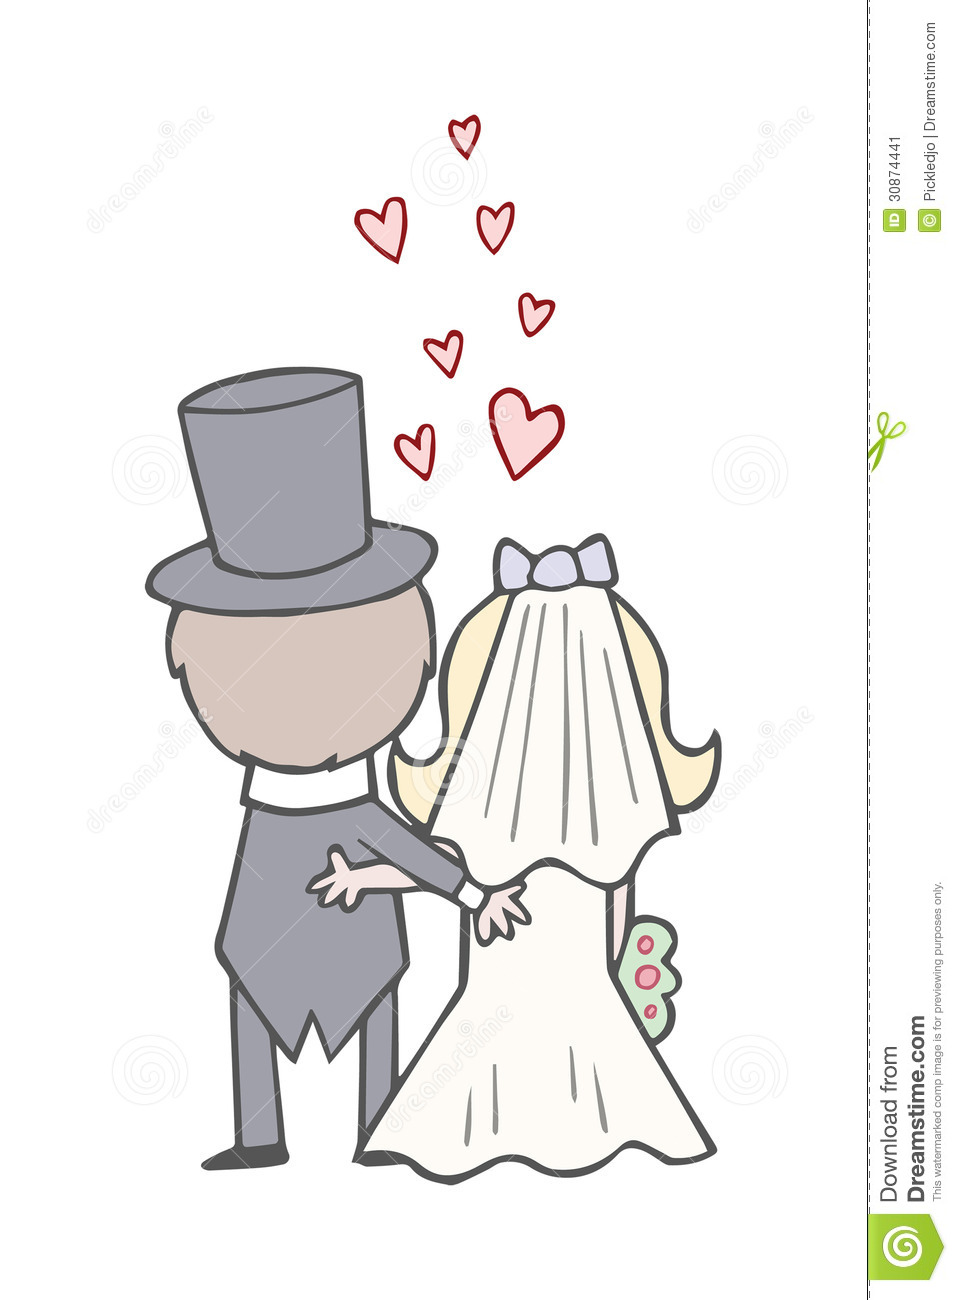 hight resolution of bride clipart bride and groom clip art